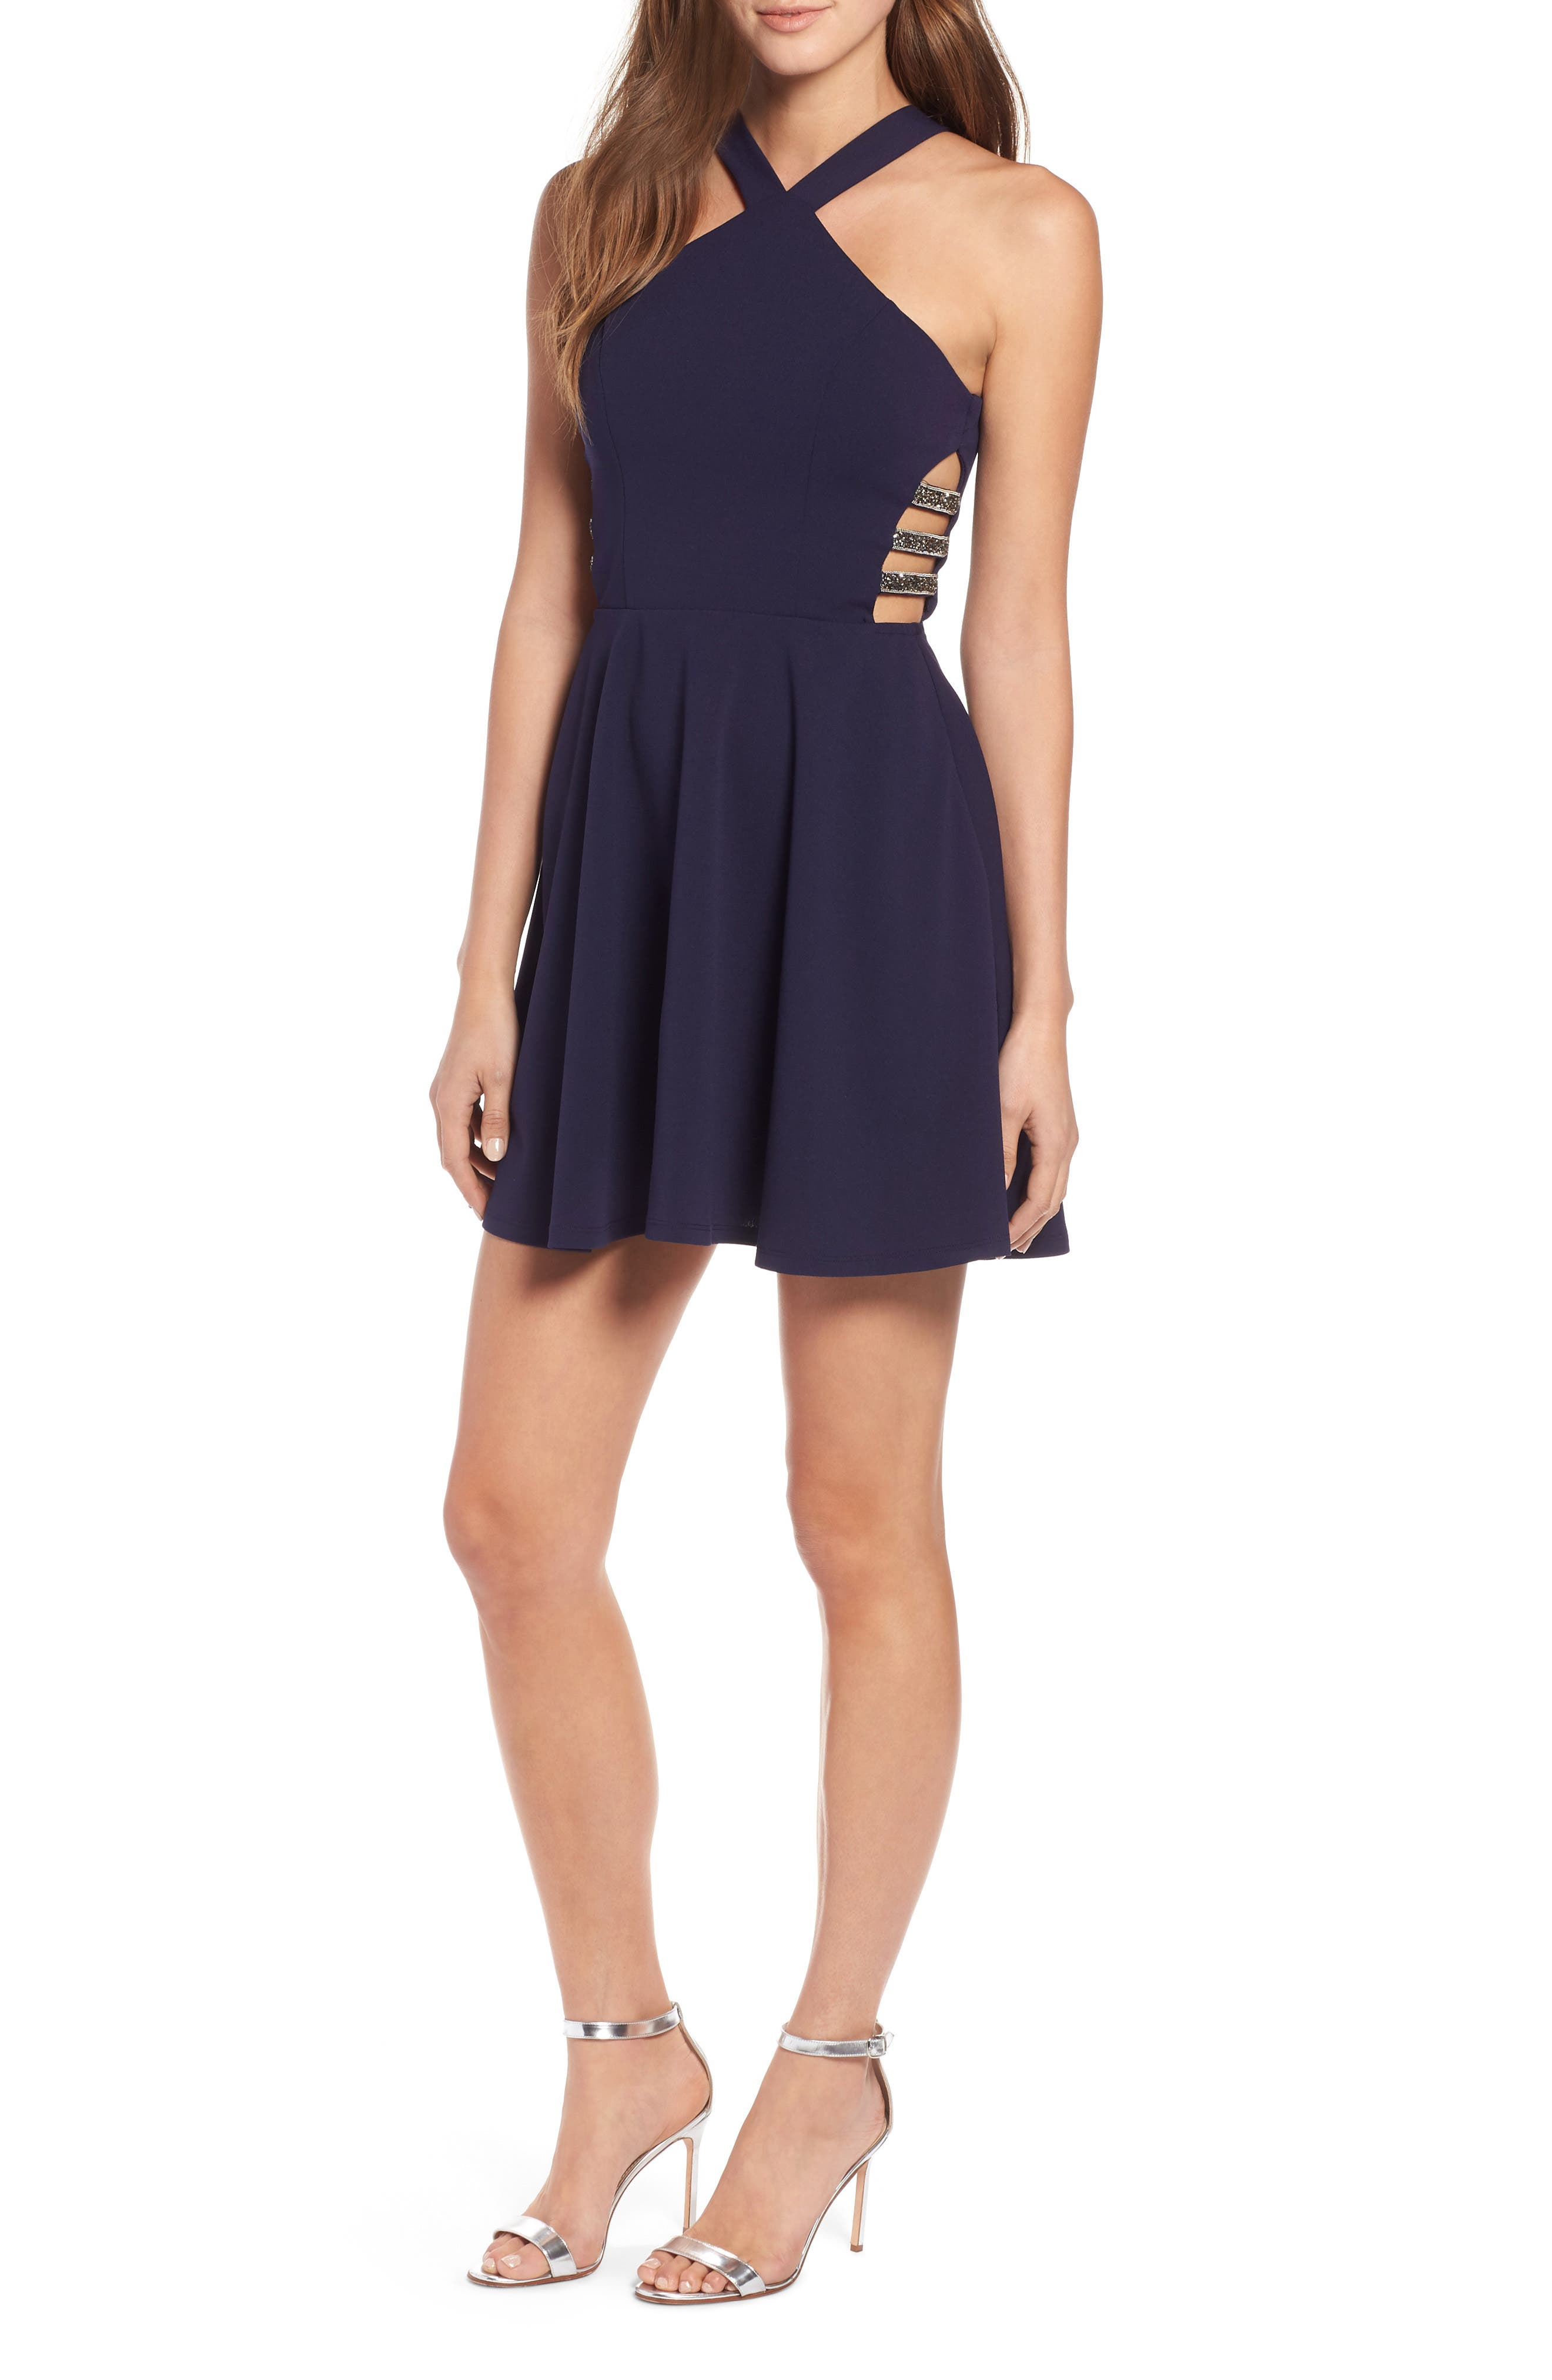 SPEECHLESS,                             Side Cutout Fit & Flare Dress,                             Main thumbnail 1, color,                             MIDNIGHT